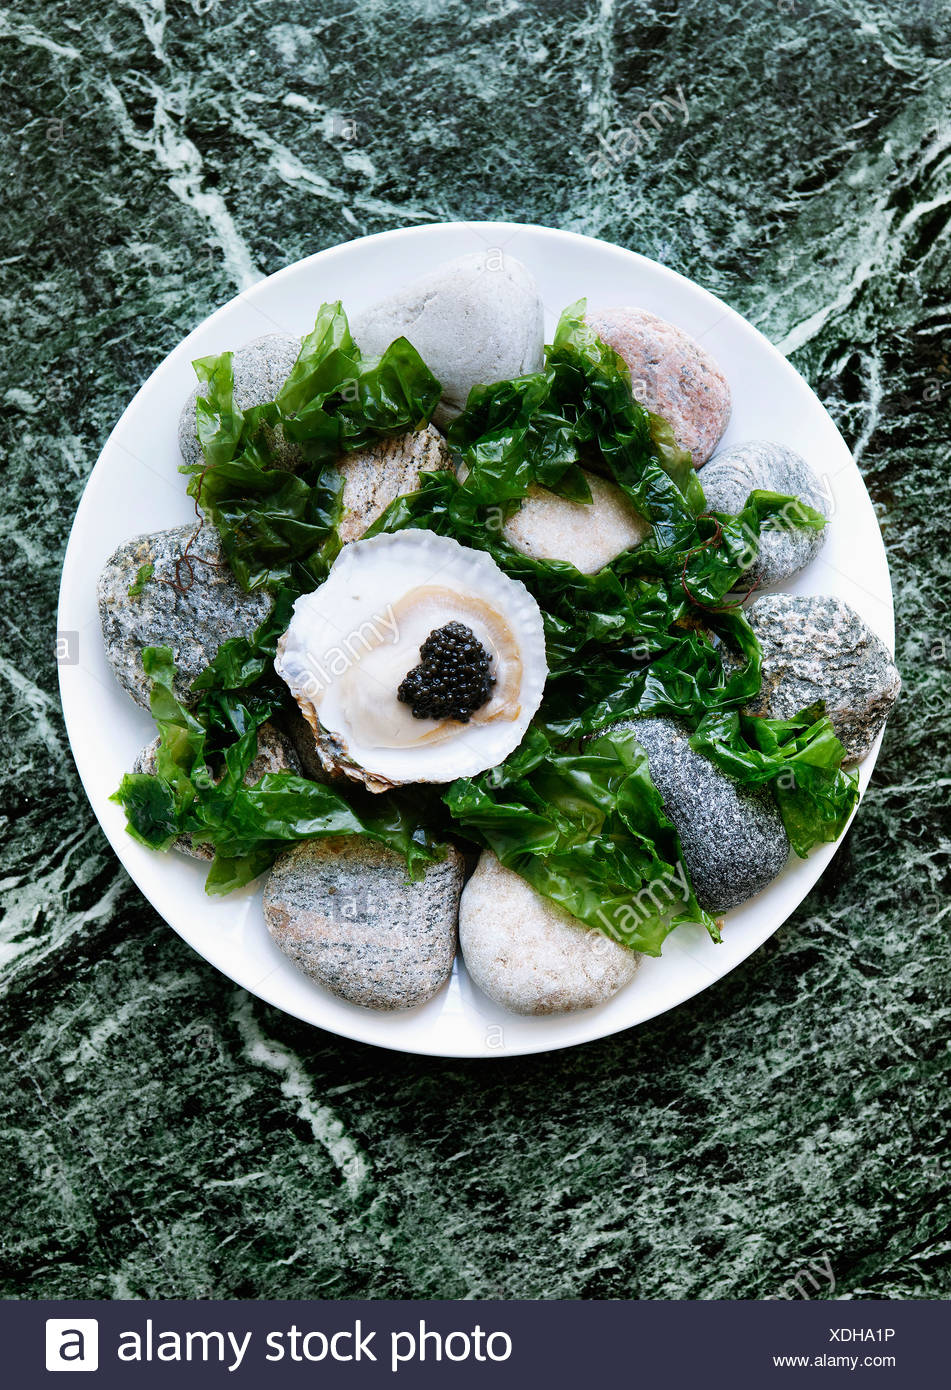 Plate of oysters with caviar and seaweed - Stock Image